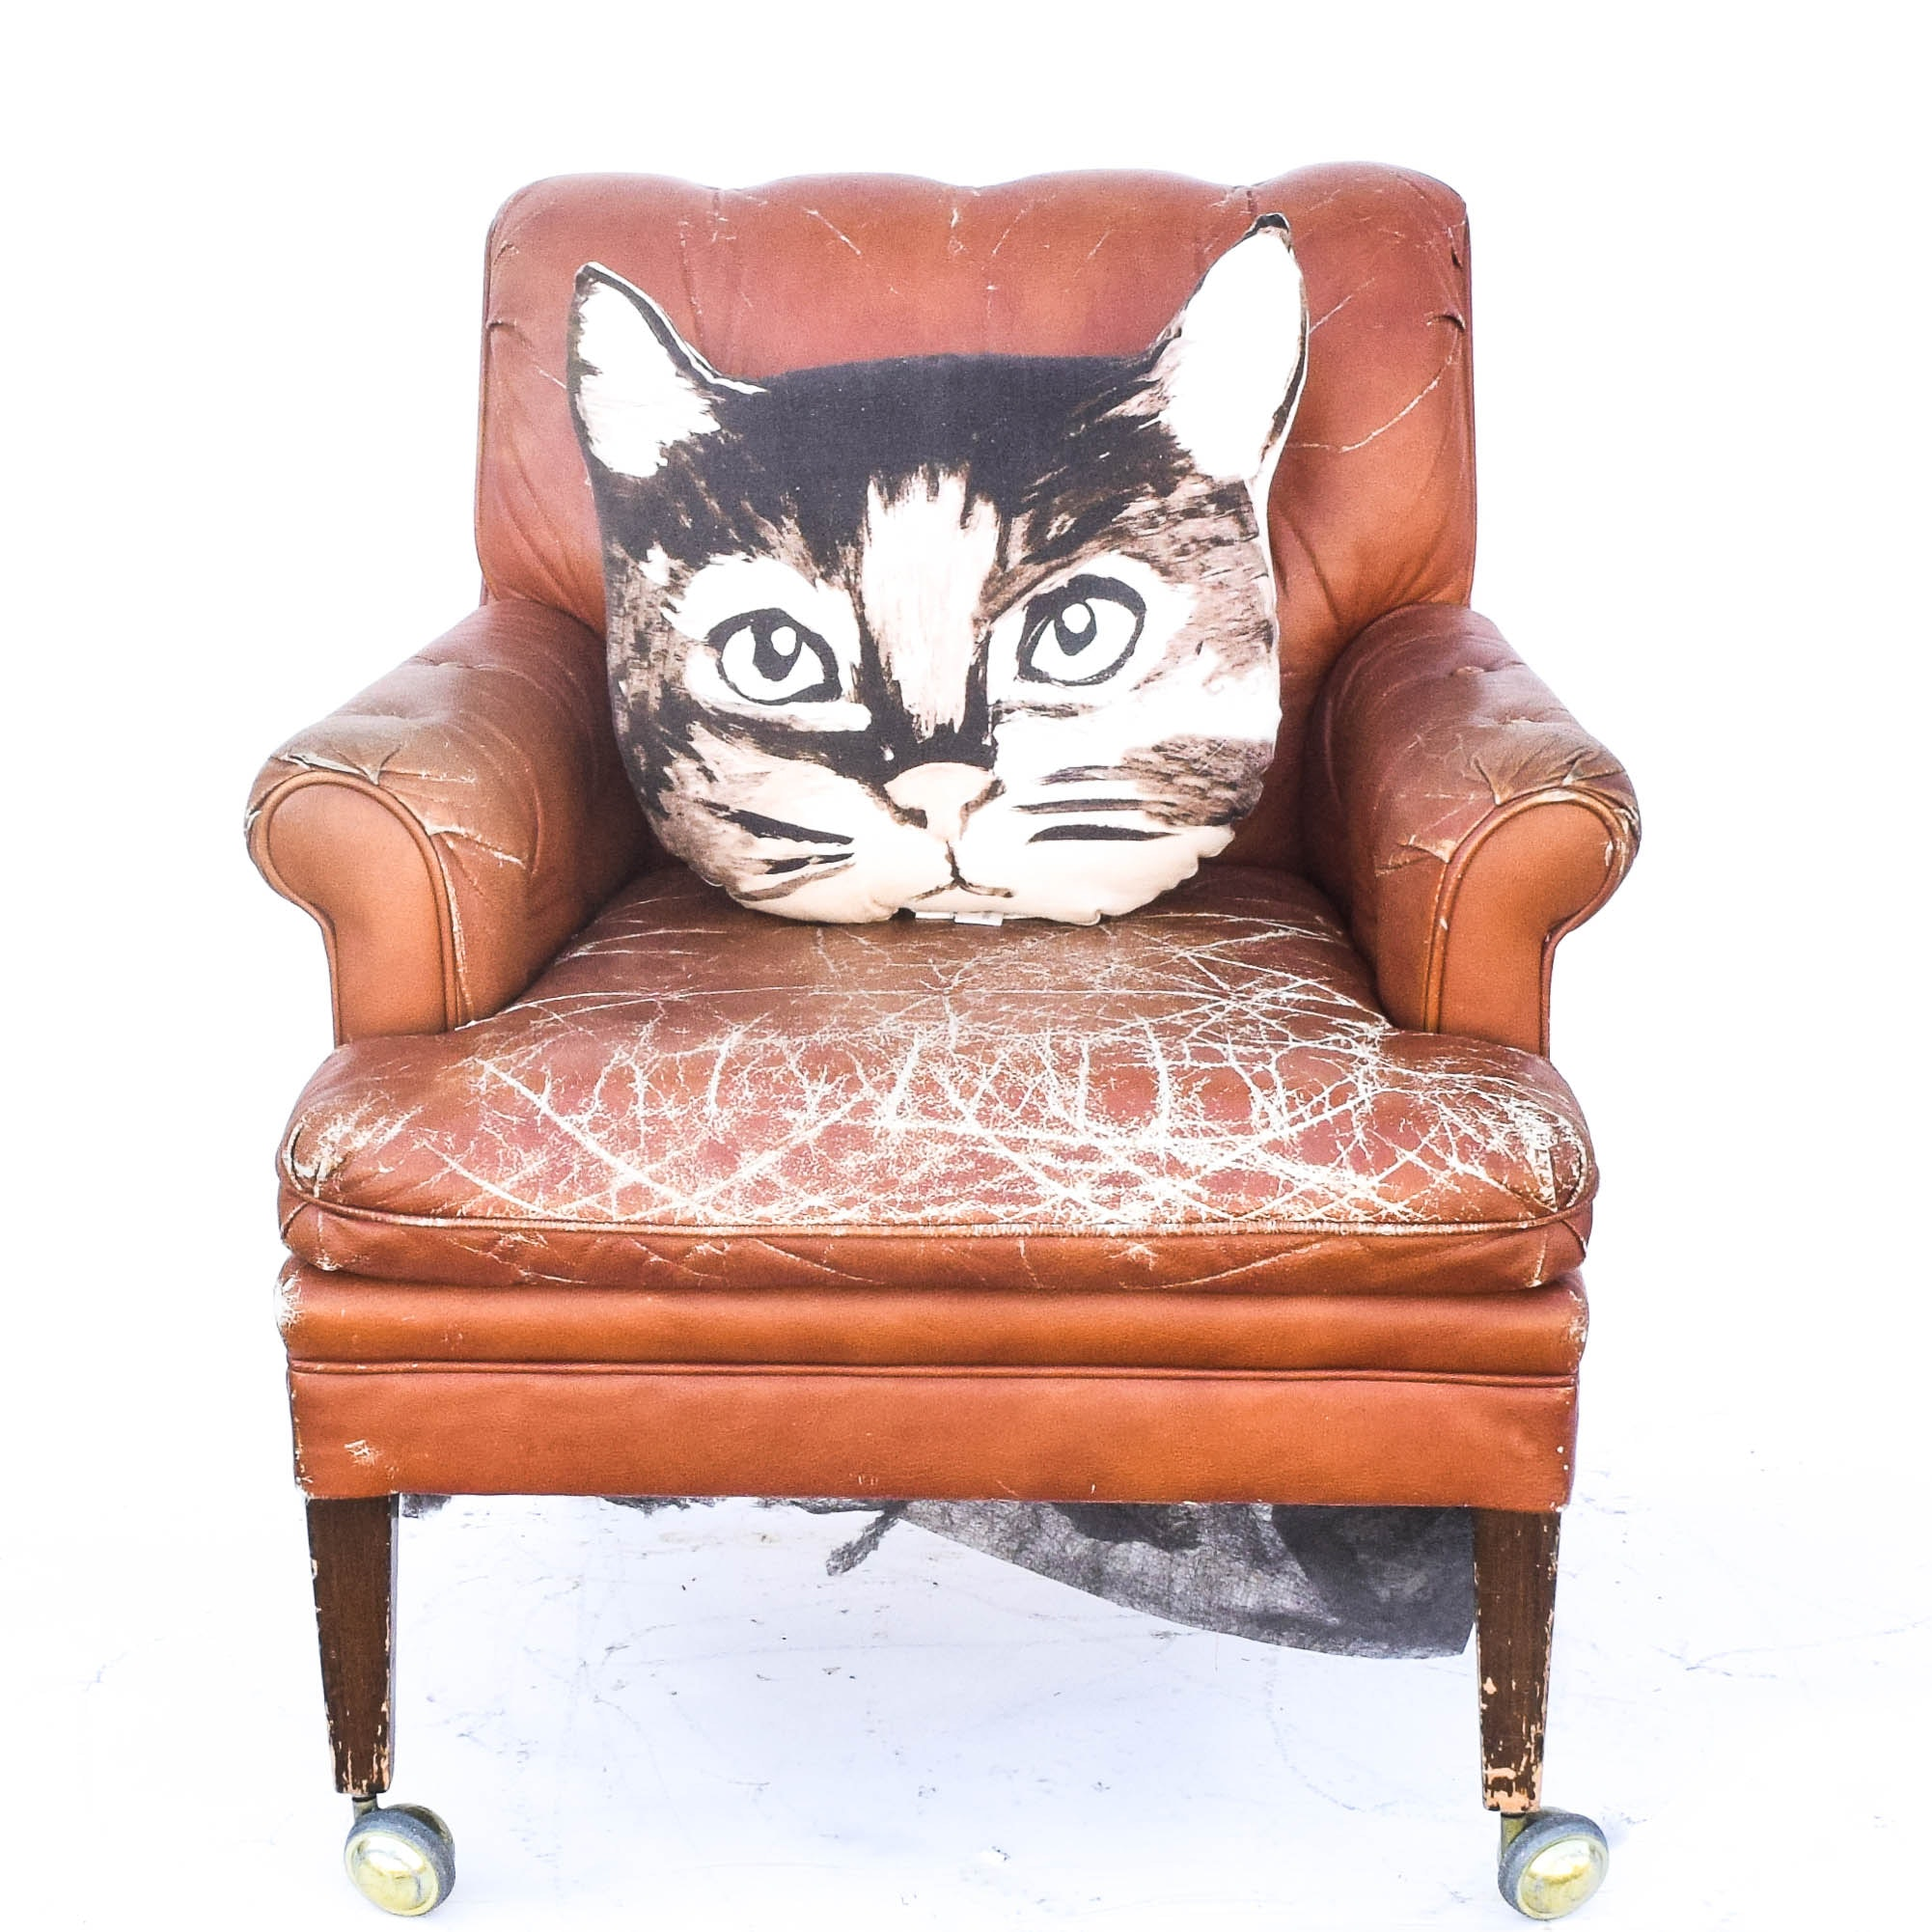 Vintage Leather Armchair with Cat Pillow